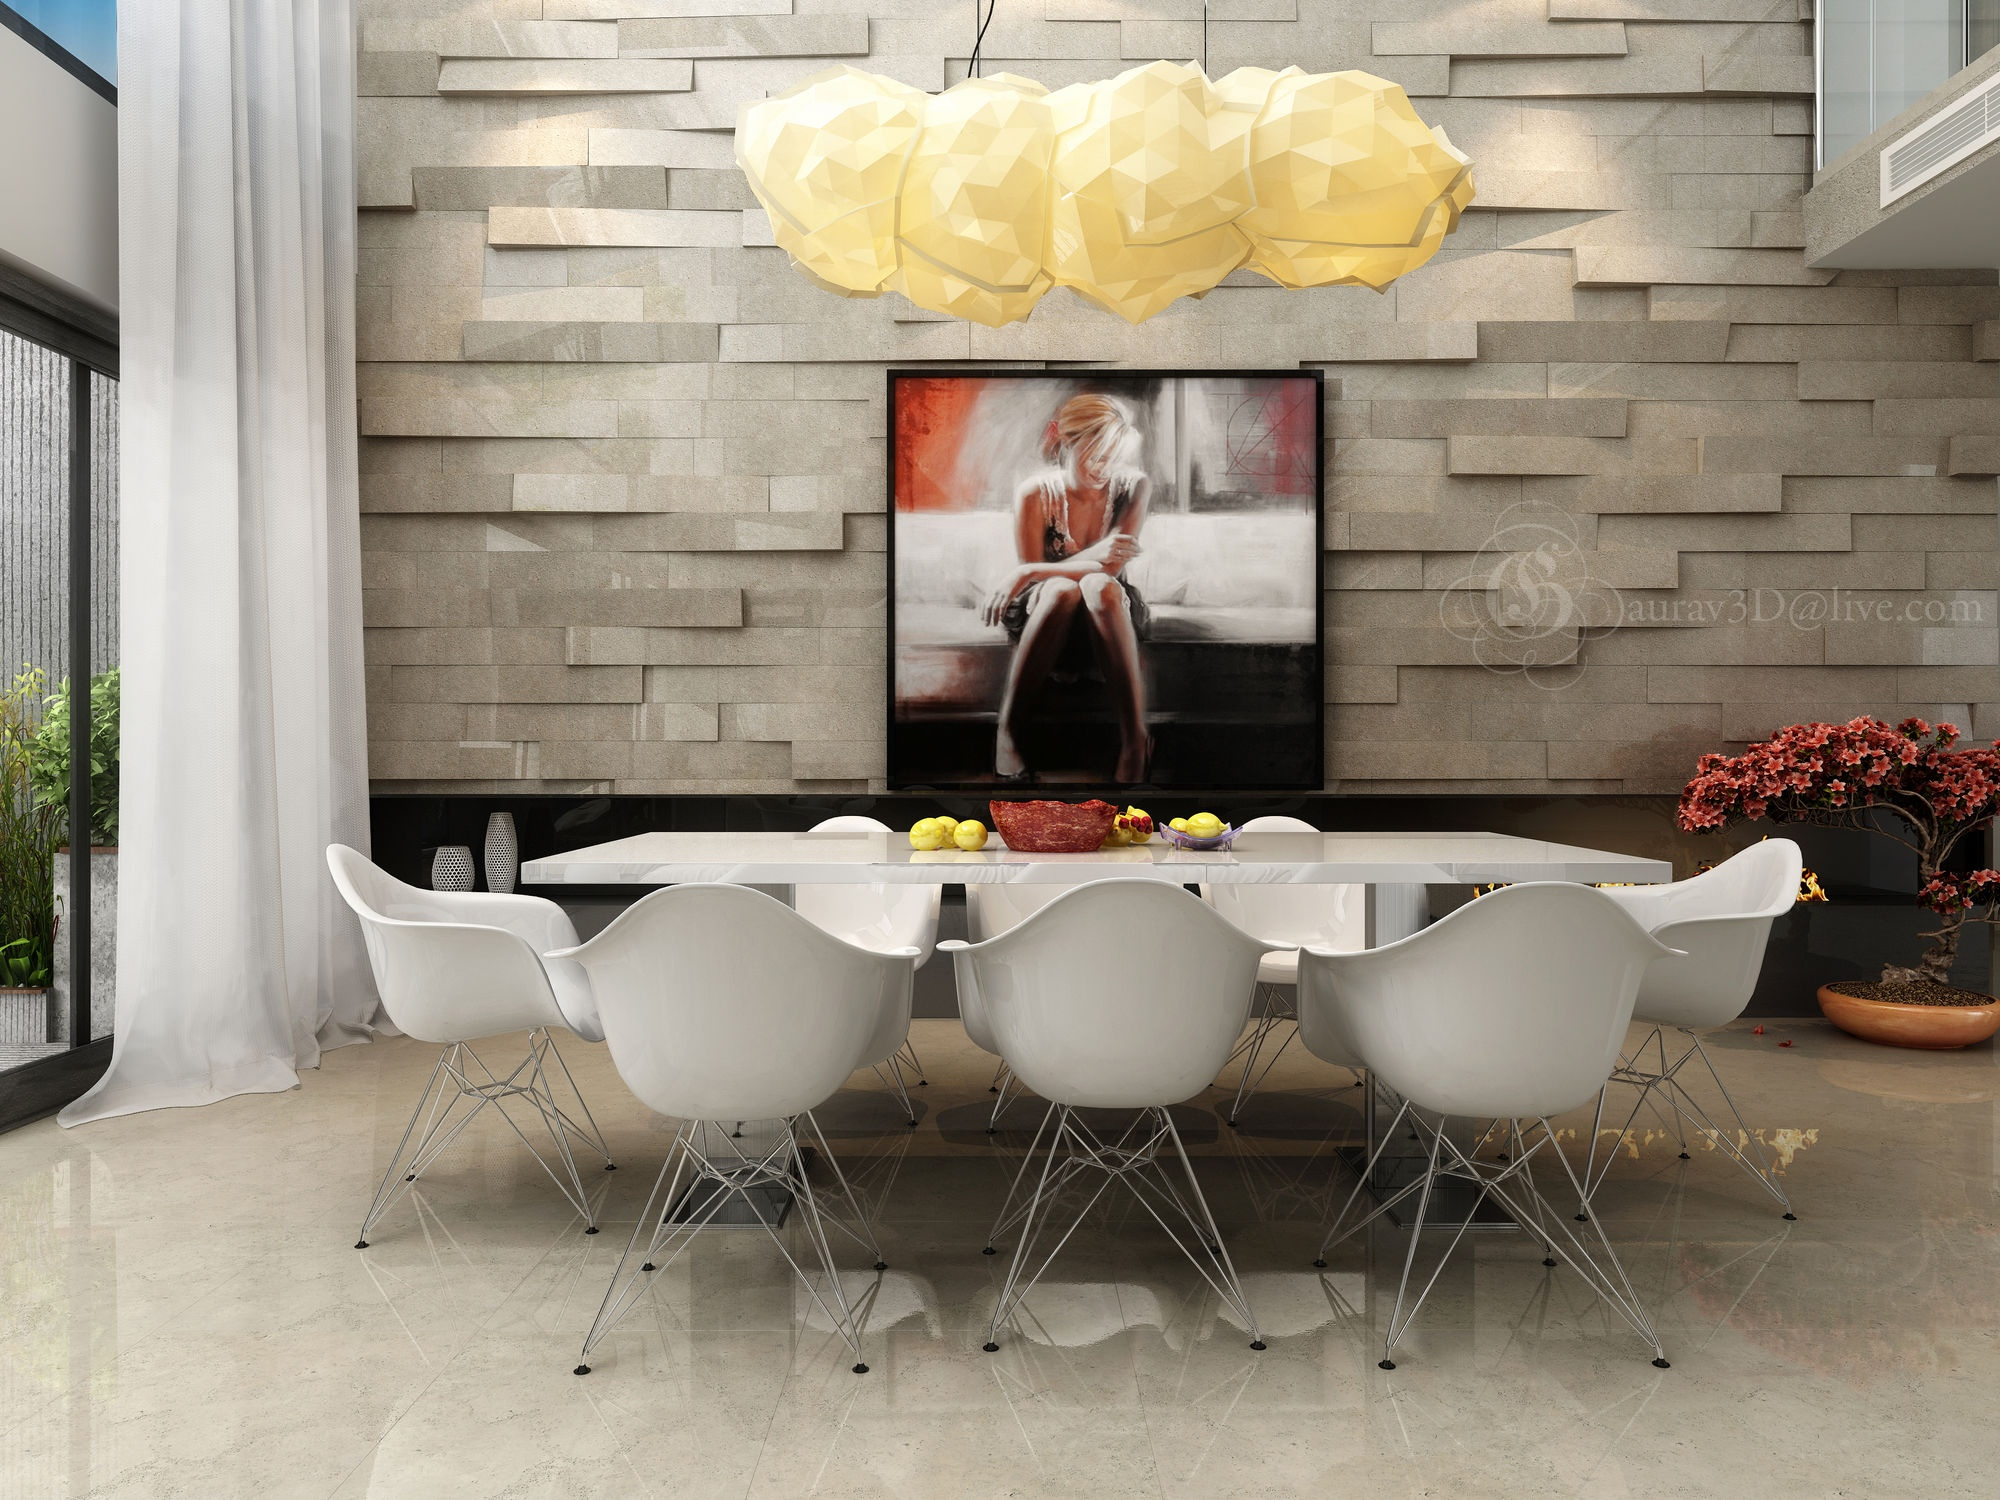 Superb Feature Wall Dining Room Ideas Part - 6: Interior Design Ideas